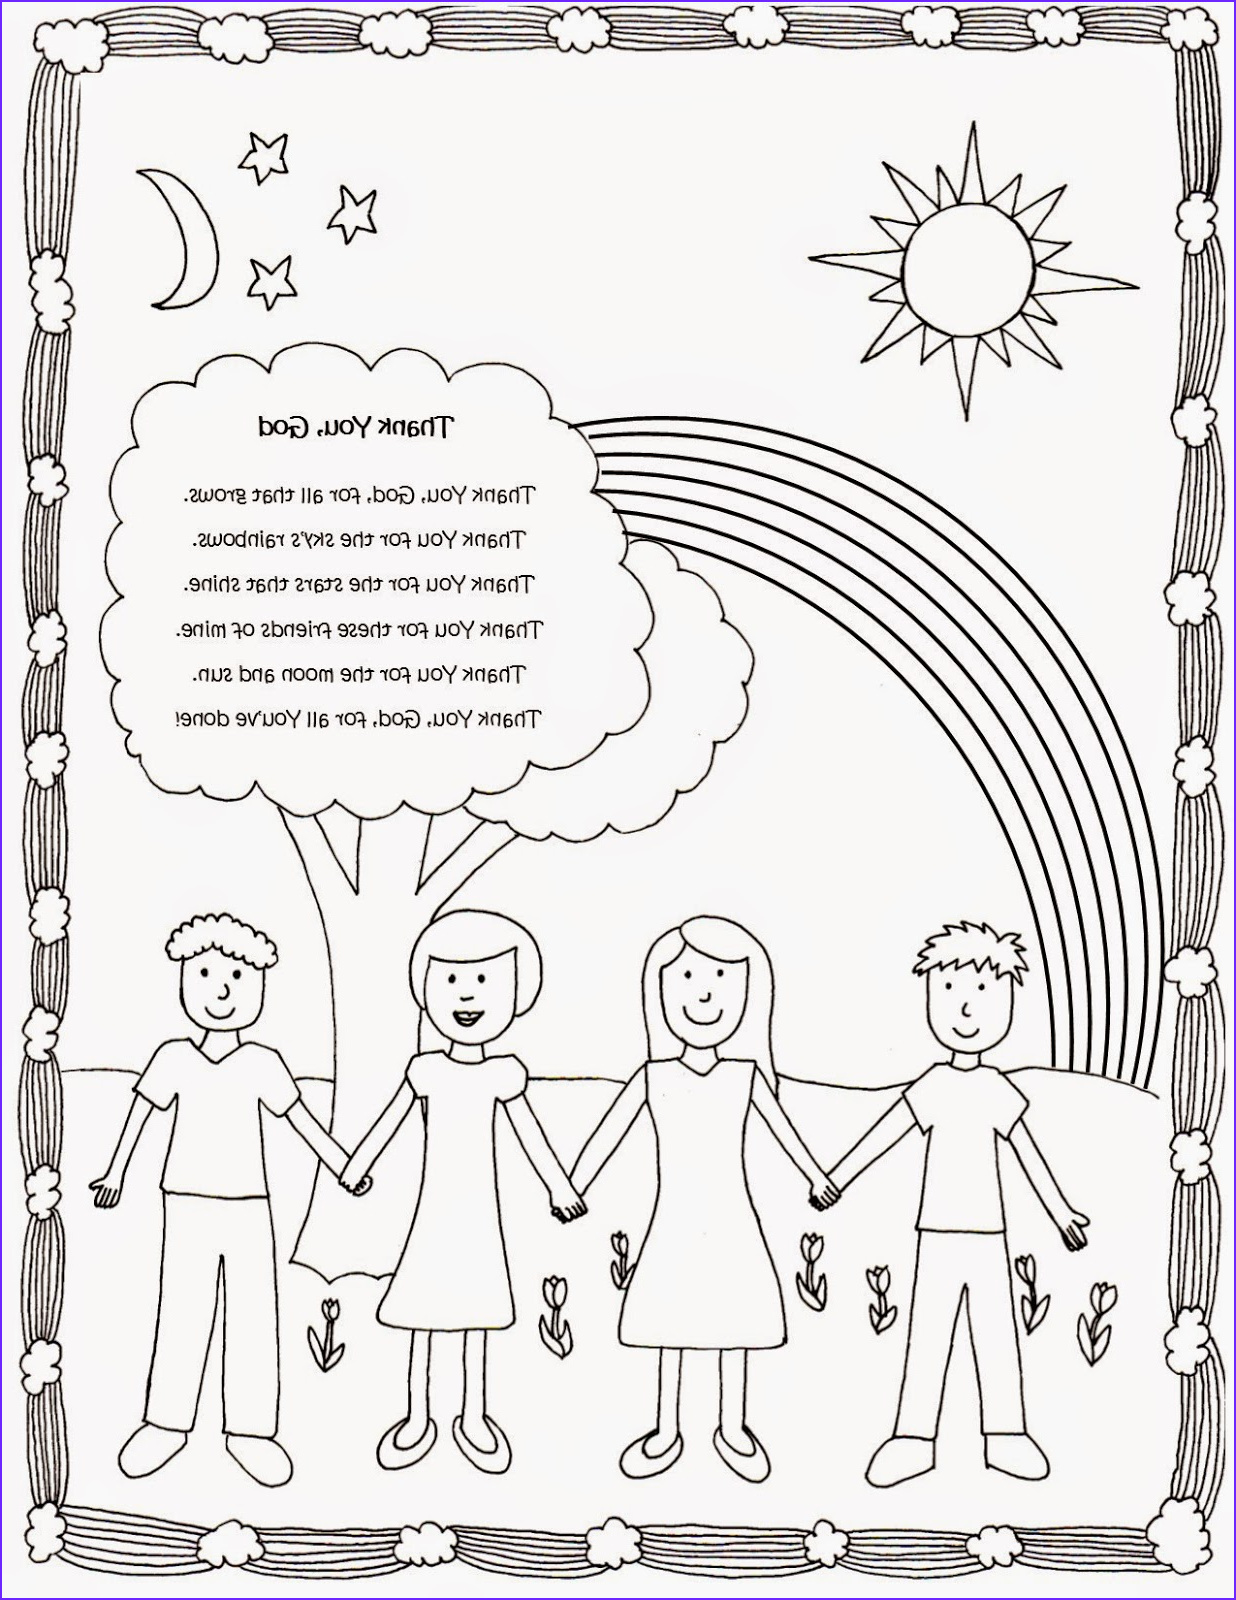 Prayer Coloring Pages Elegant Images Drawn2bcreative Cute and Free Coloring Page with Thank